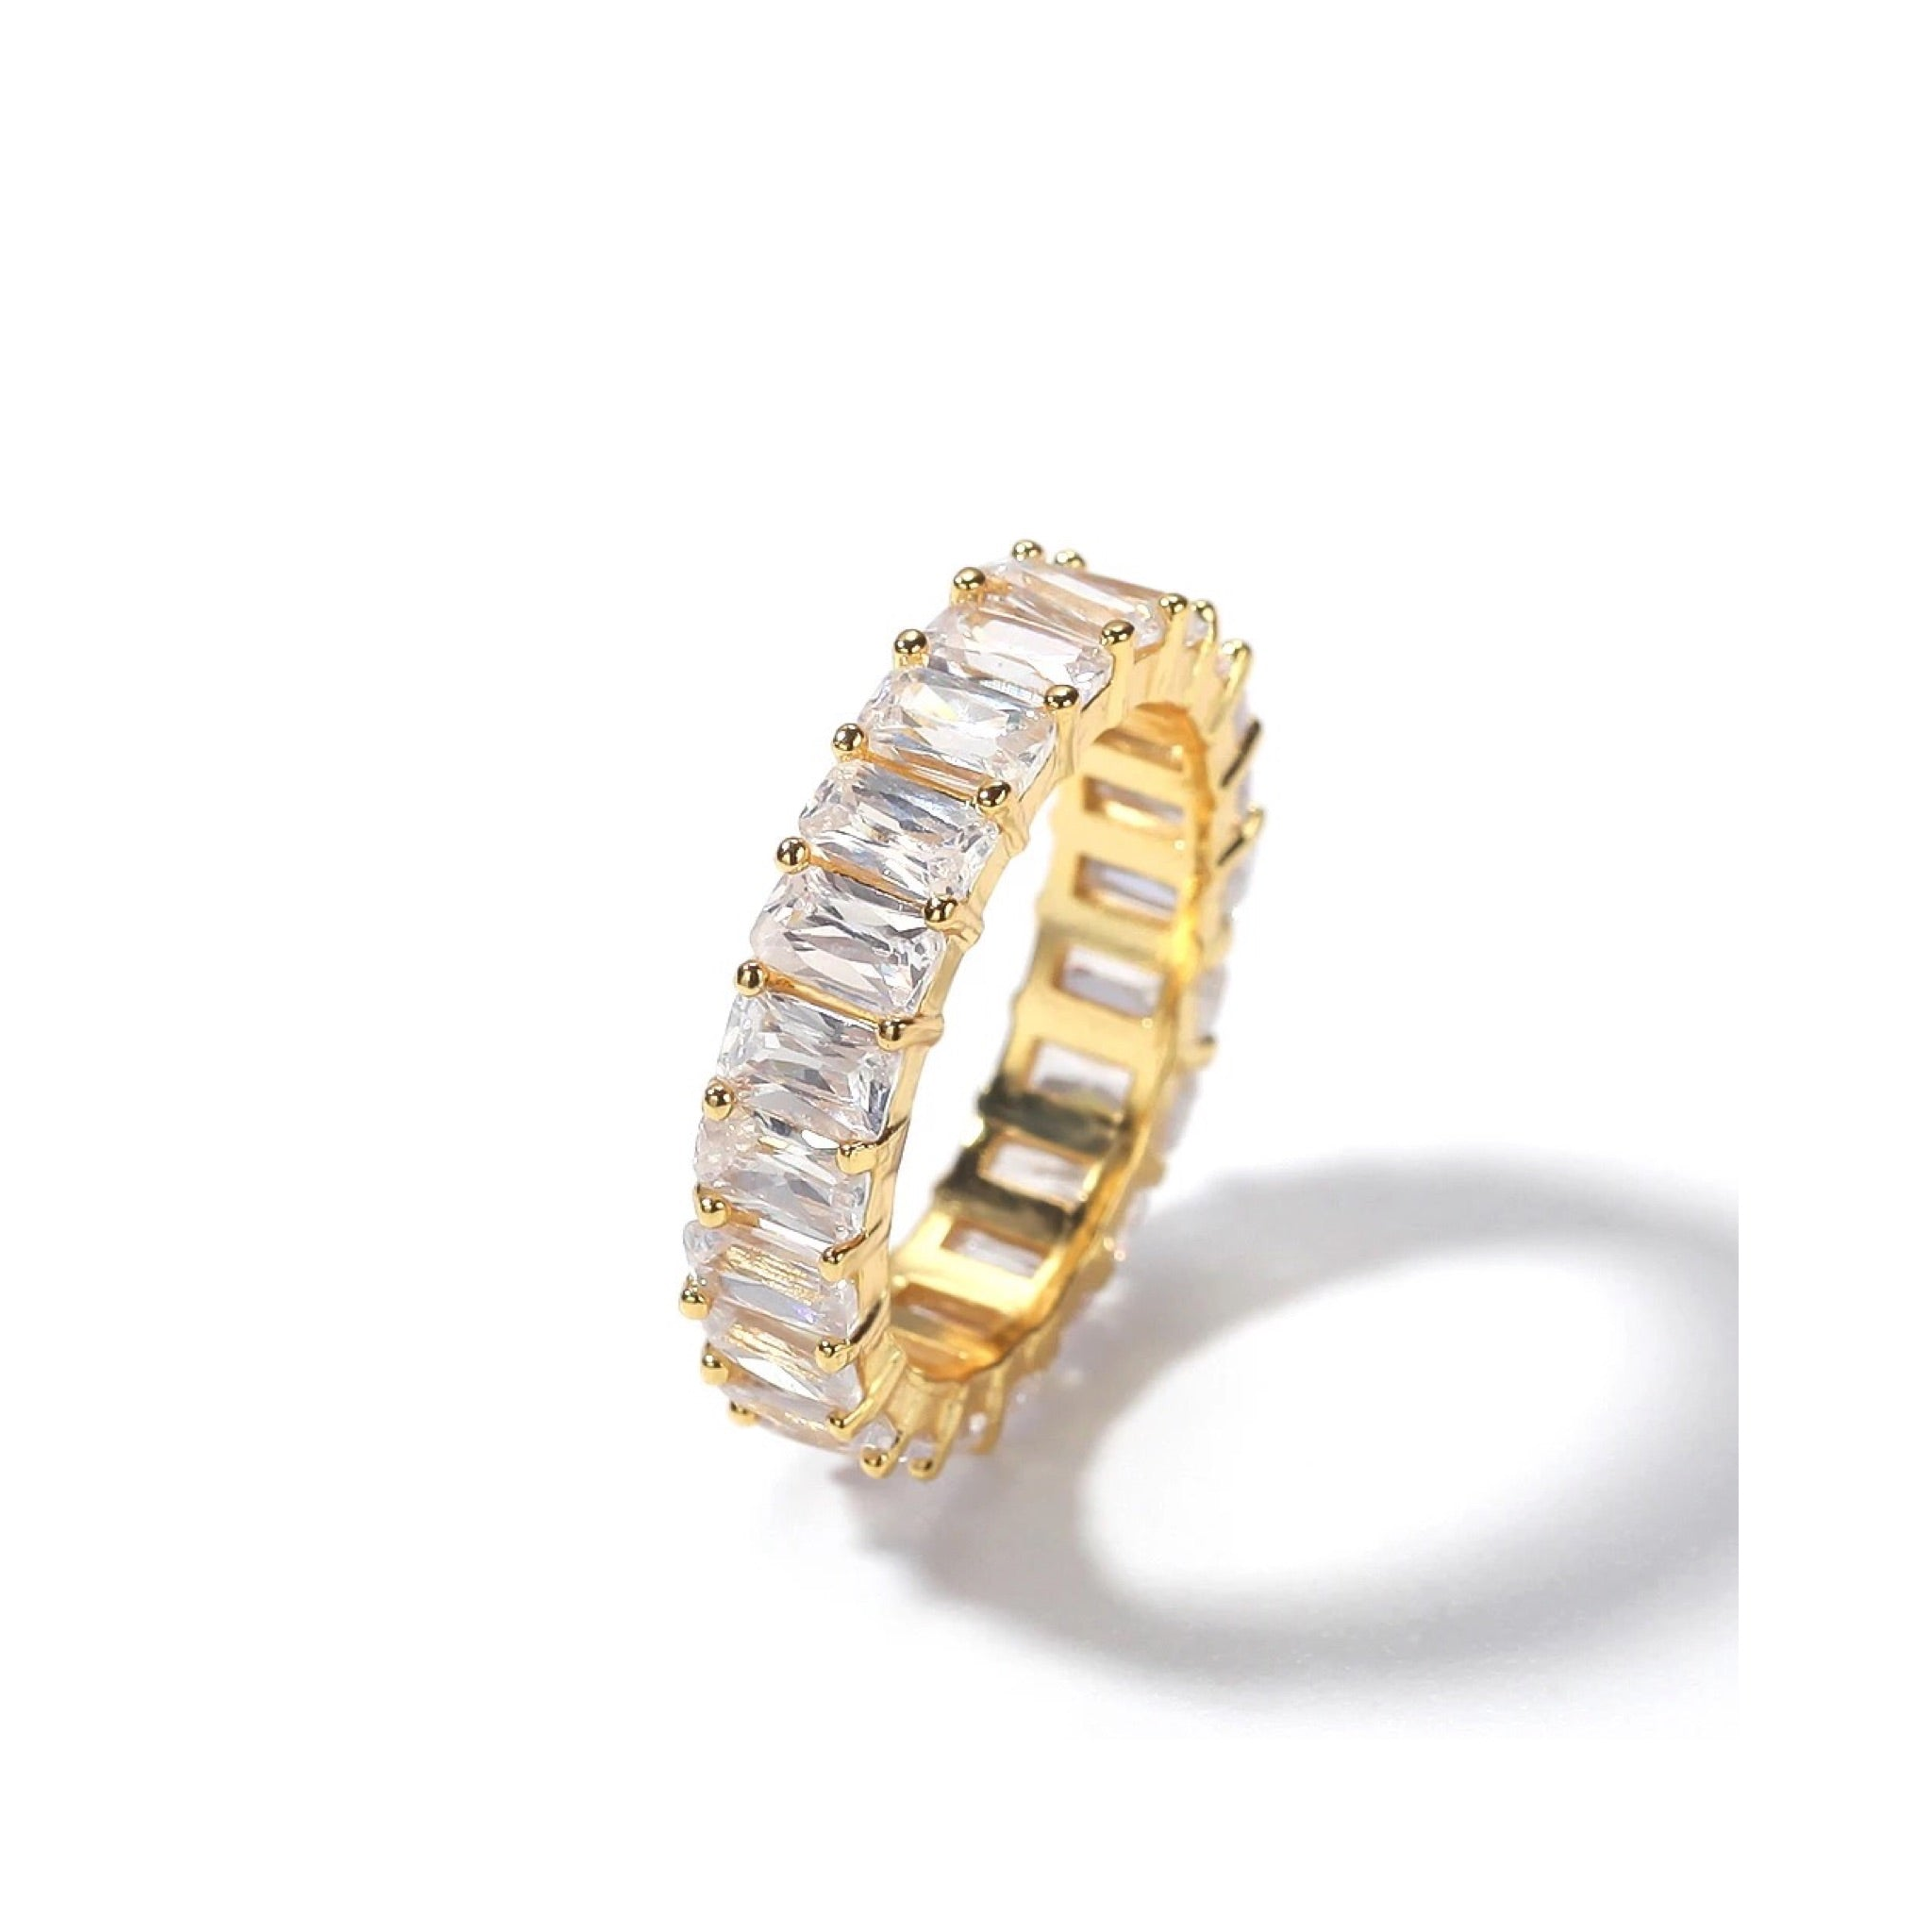 Baguette Sugar Bond Ring In Gold - Innysthebrand Jewellery